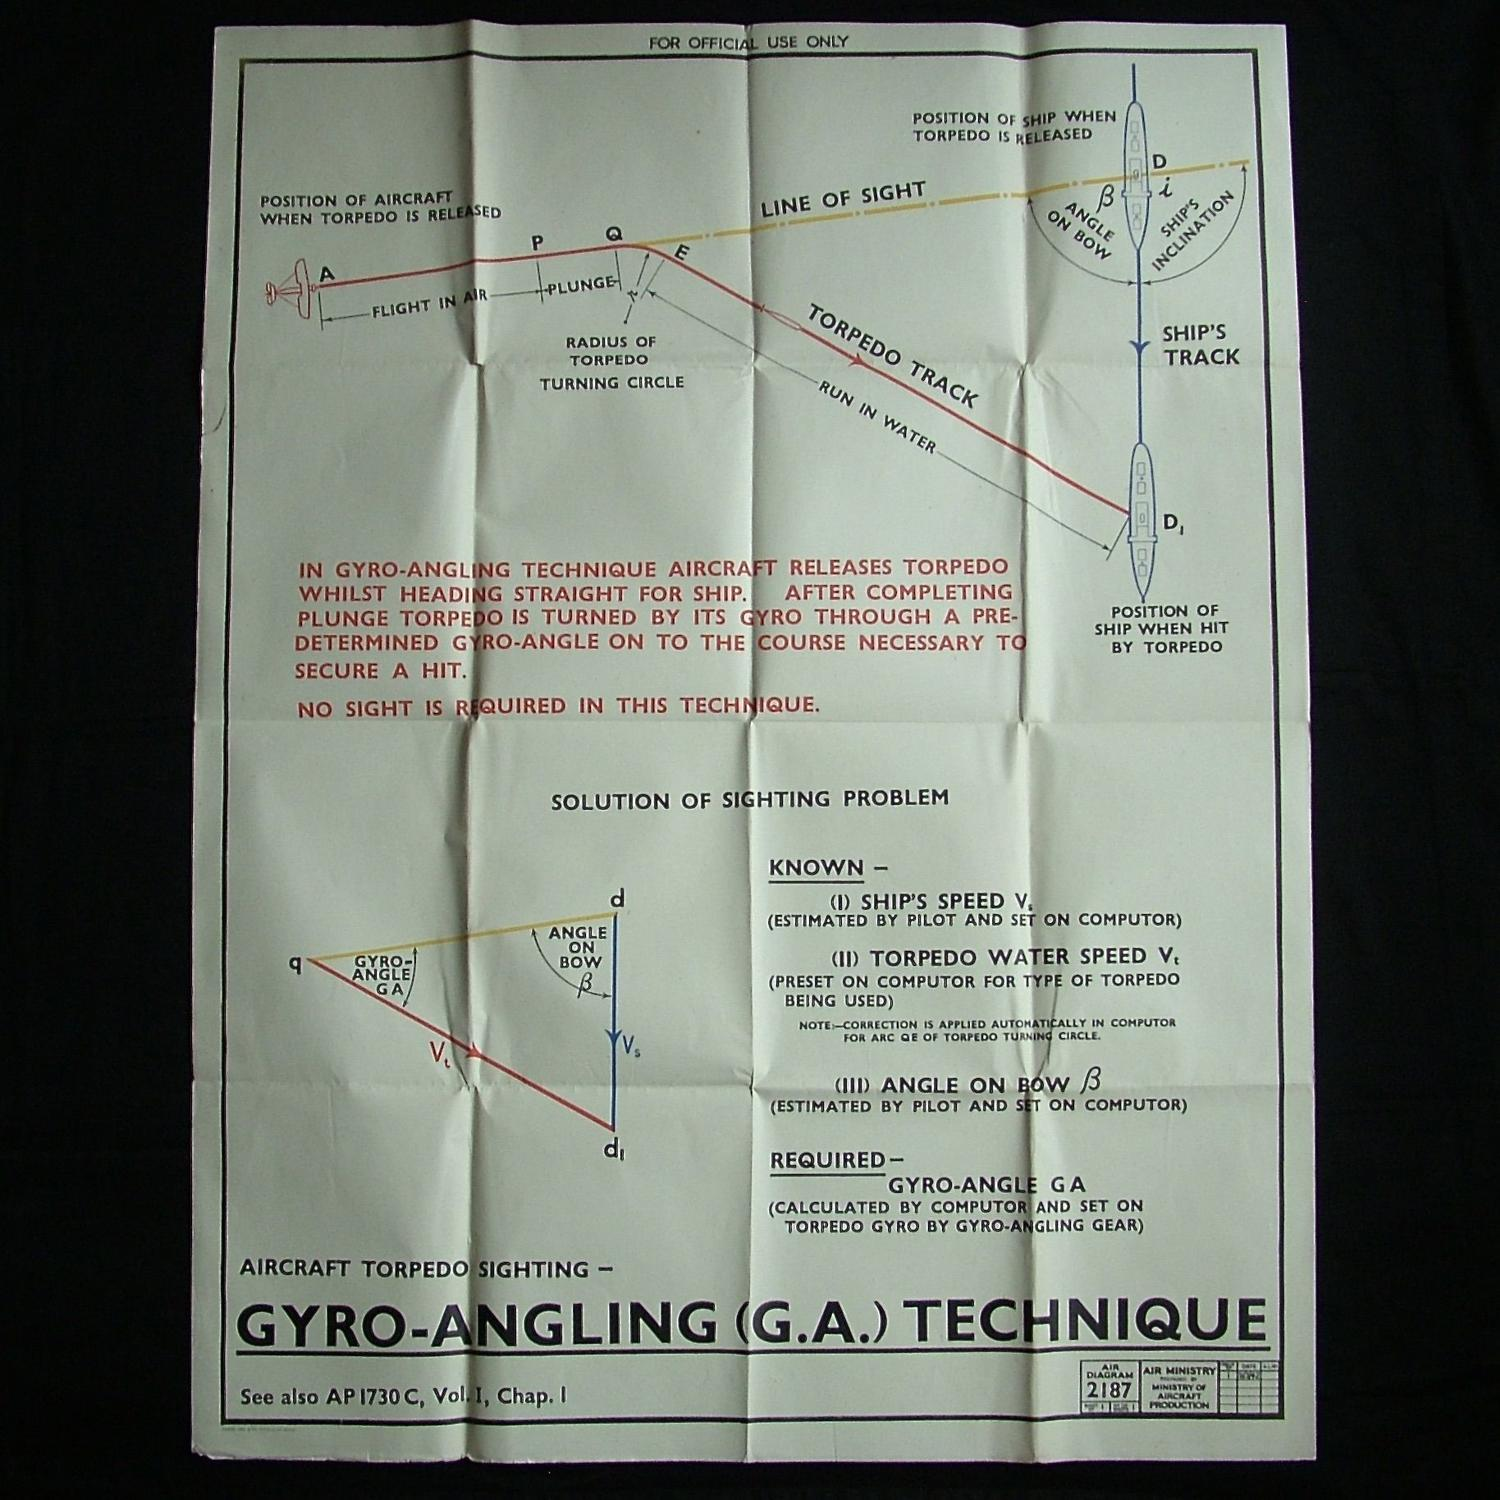 RAF Air Diagram - Torpedo Release, 1942